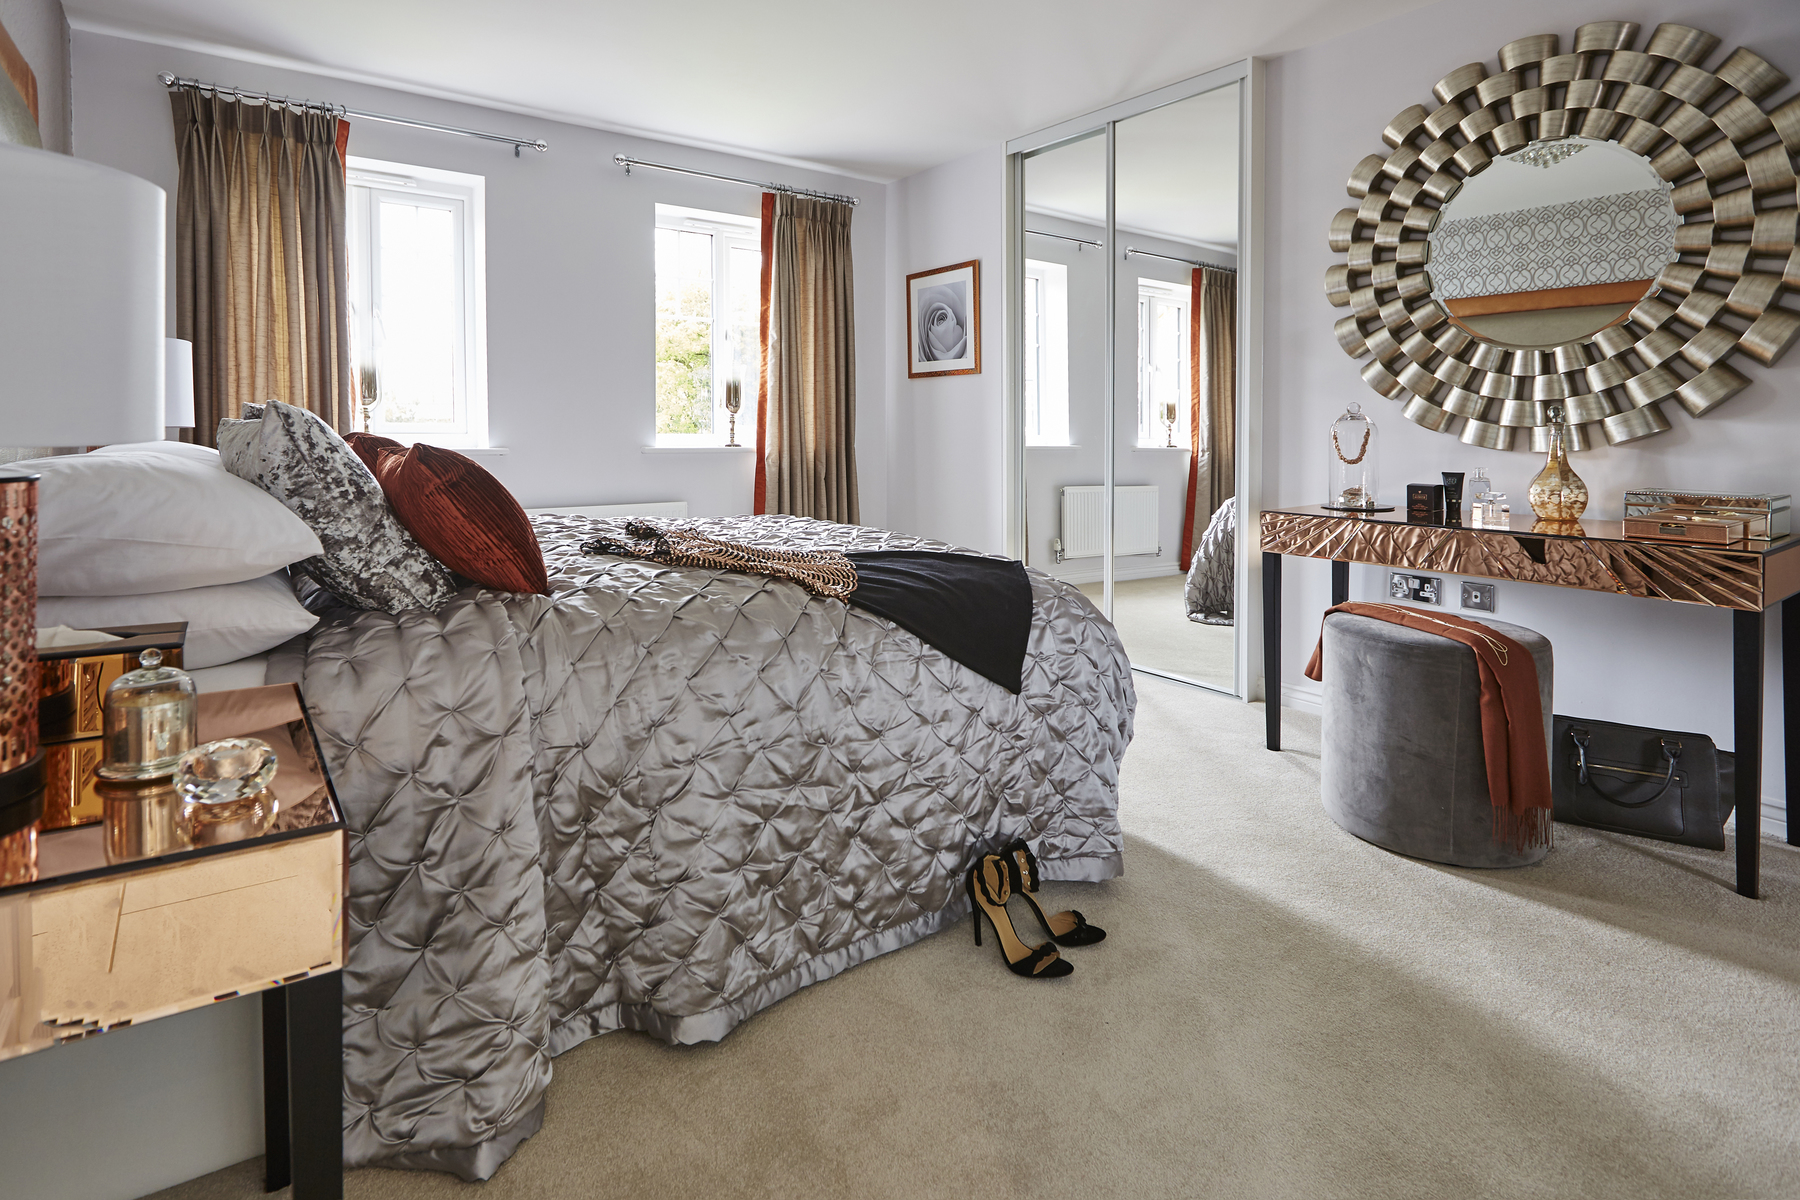 tw_wmids_bowbrook_hartlebury_pd411_haddenham_bedroom